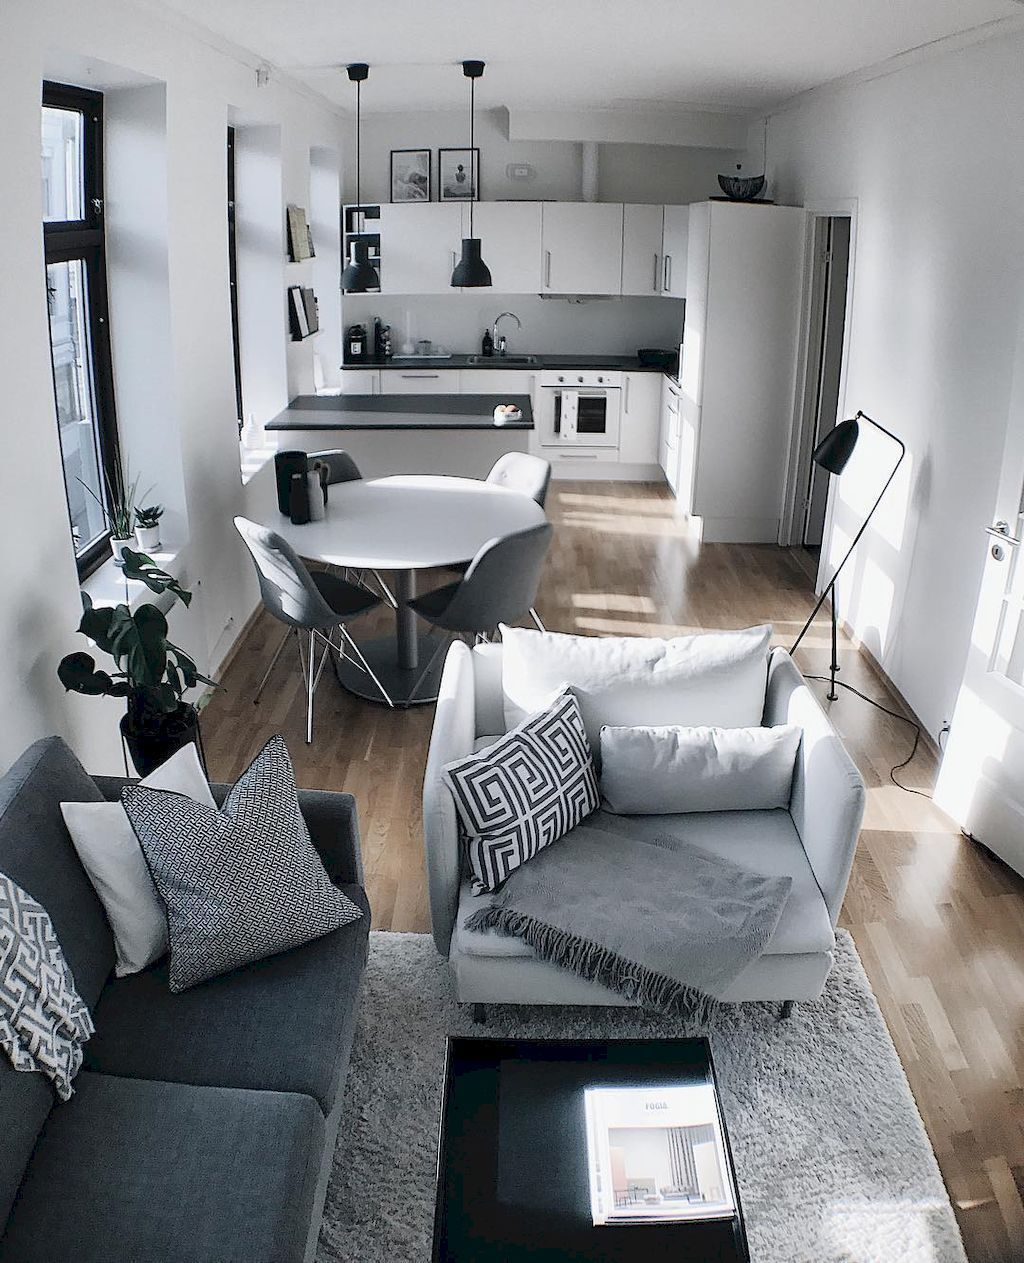 20 Small Apartment Living Room Layout Ideas Apartment Decor Inspiration Small Apartment Living Room Small Apartment Decorating